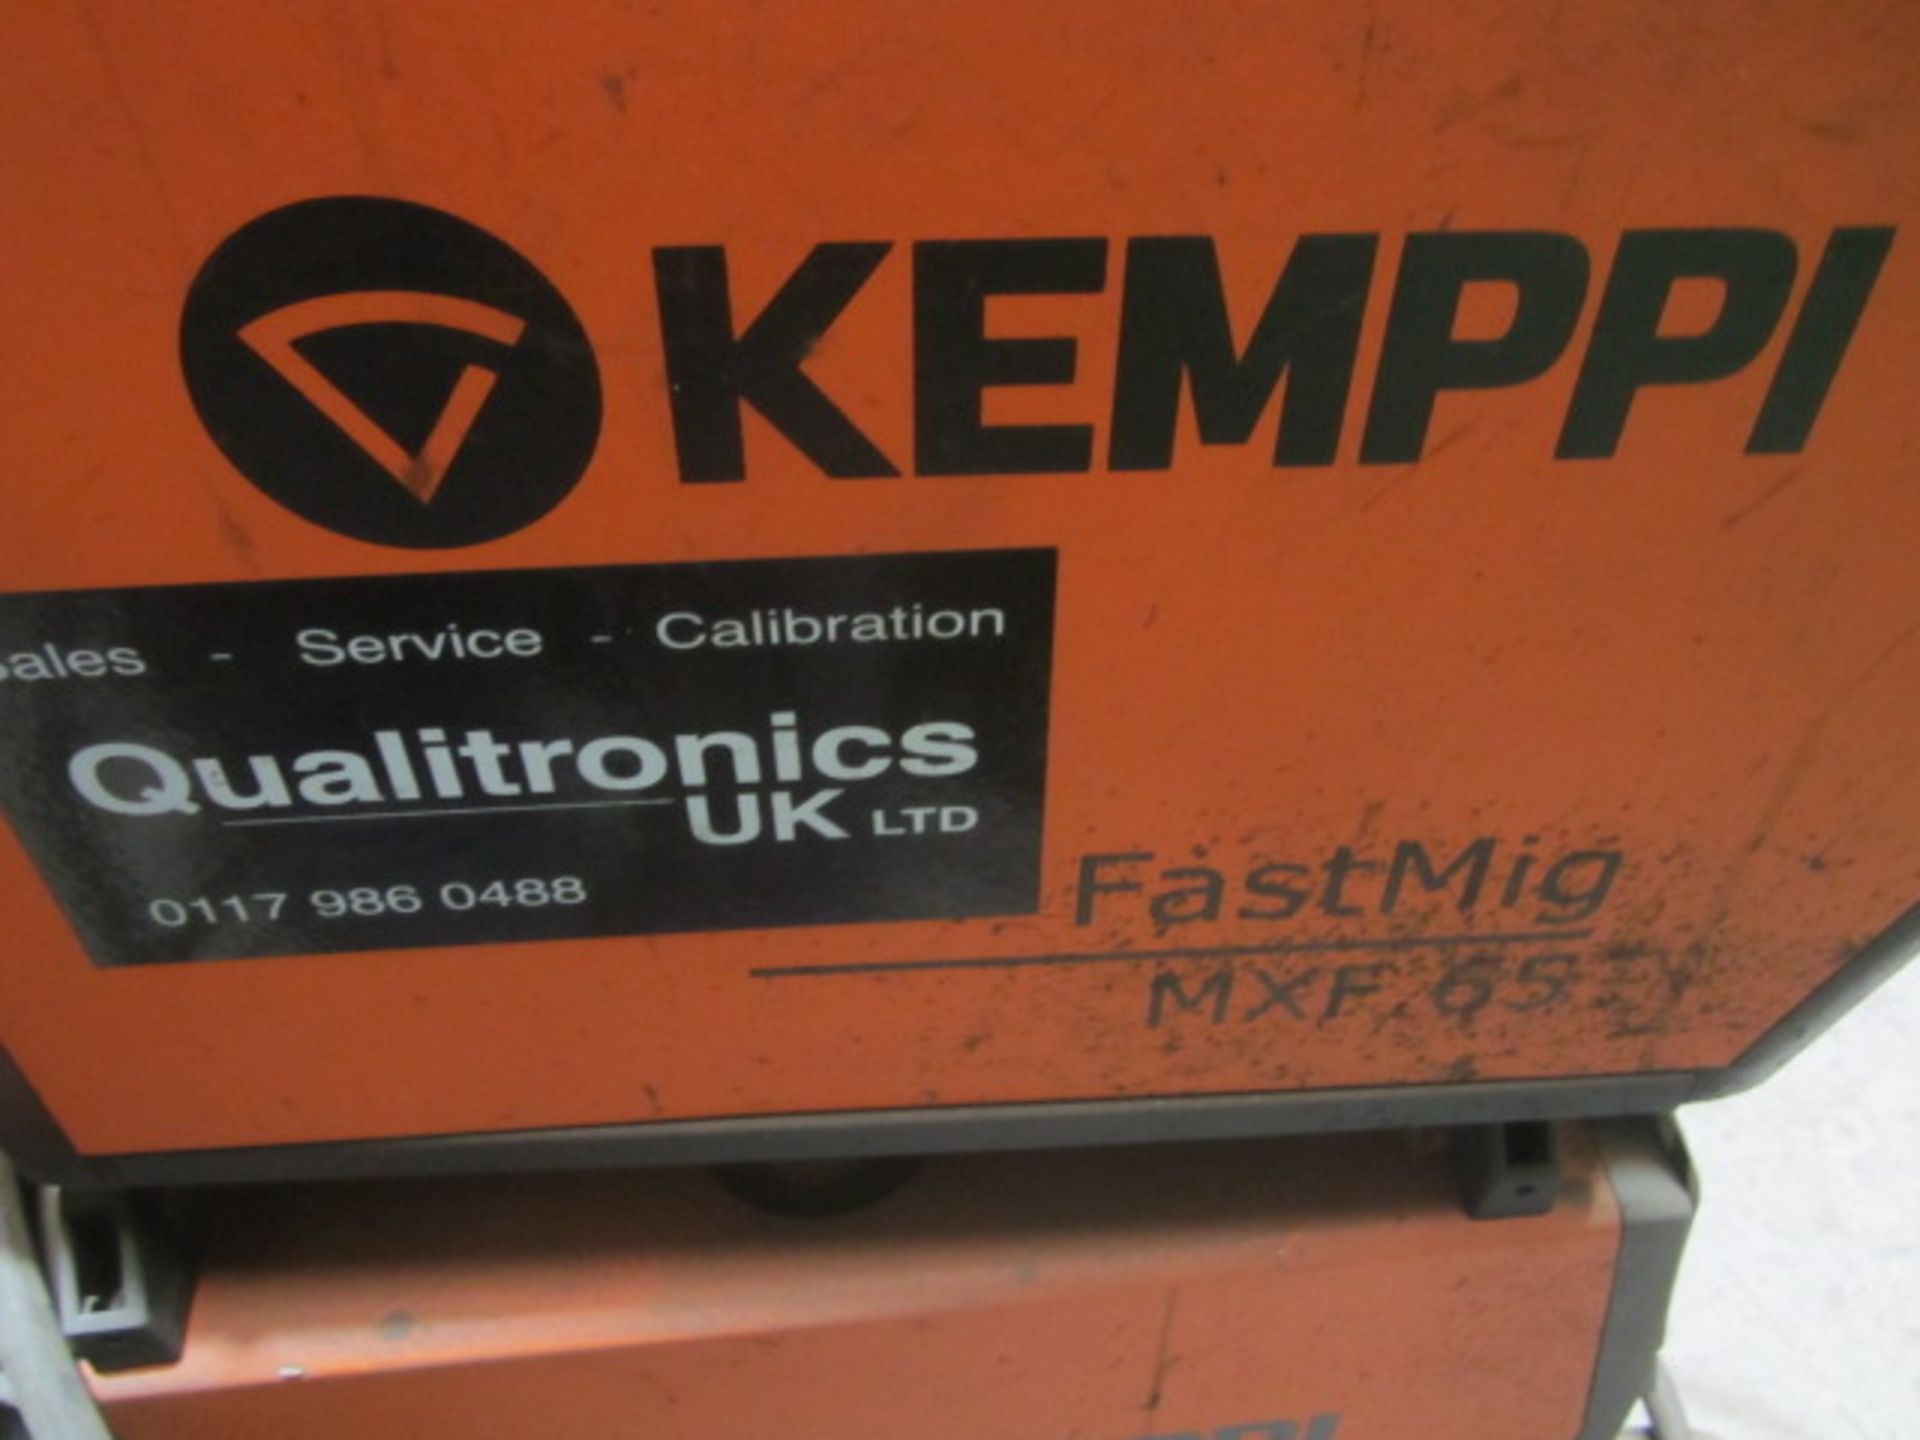 Kemppi Fast Mig M420 mig welder, serial no. 2674175, with Fast Mig MXF65 wire feeder, serial no. - Image 4 of 7